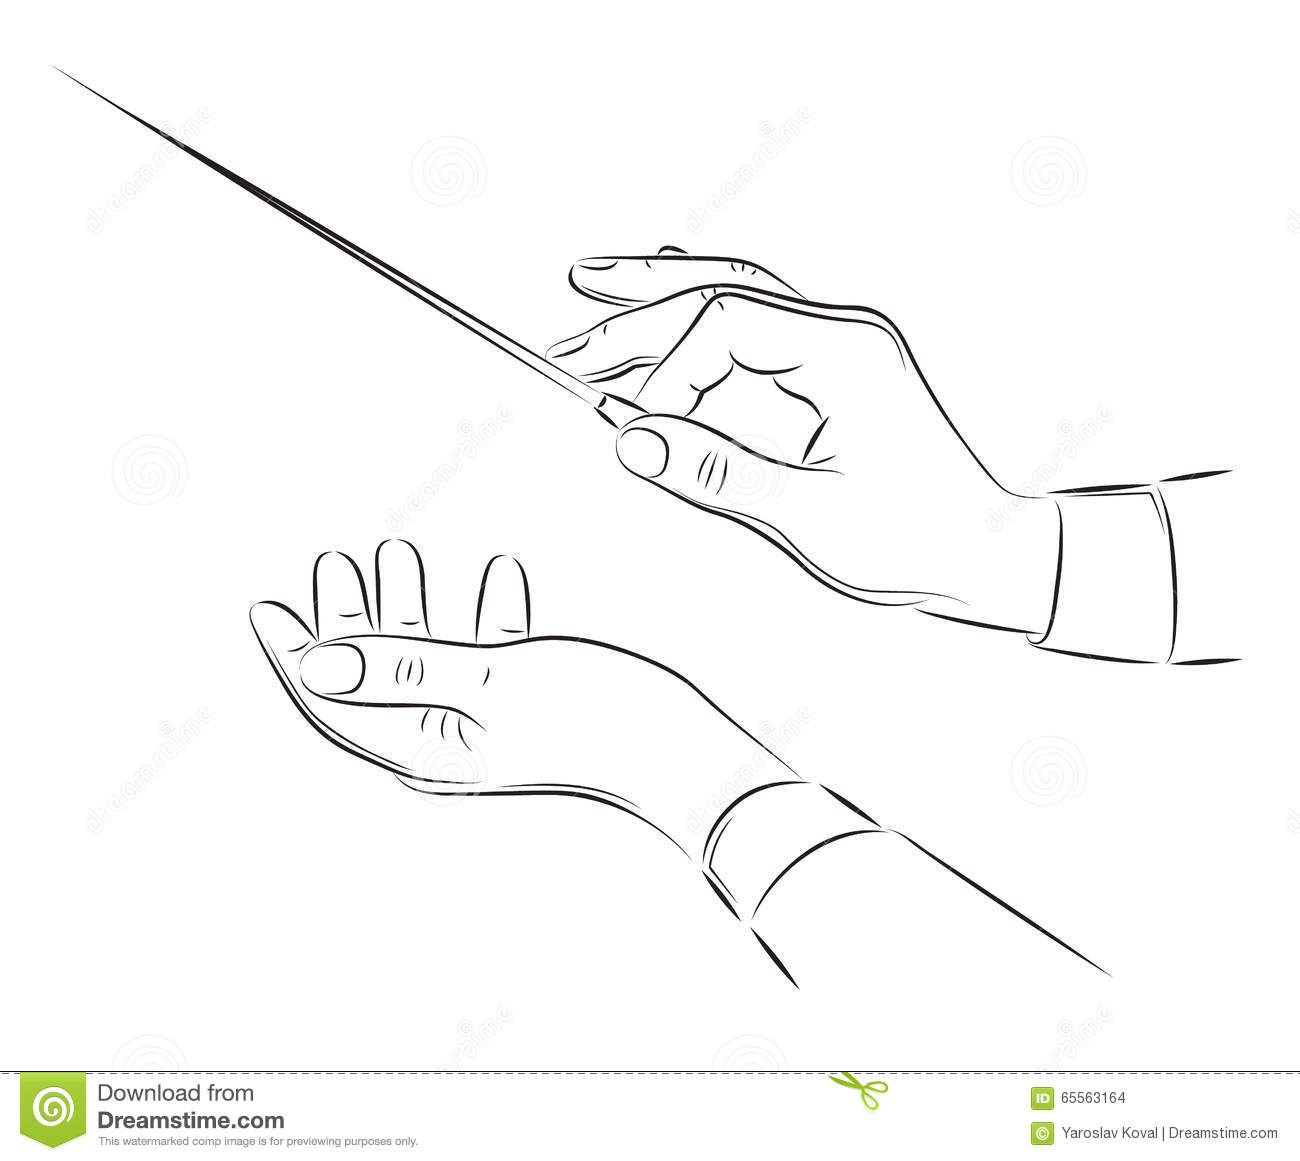 Hands Of Conductor Illustration Royalty Free Illustration